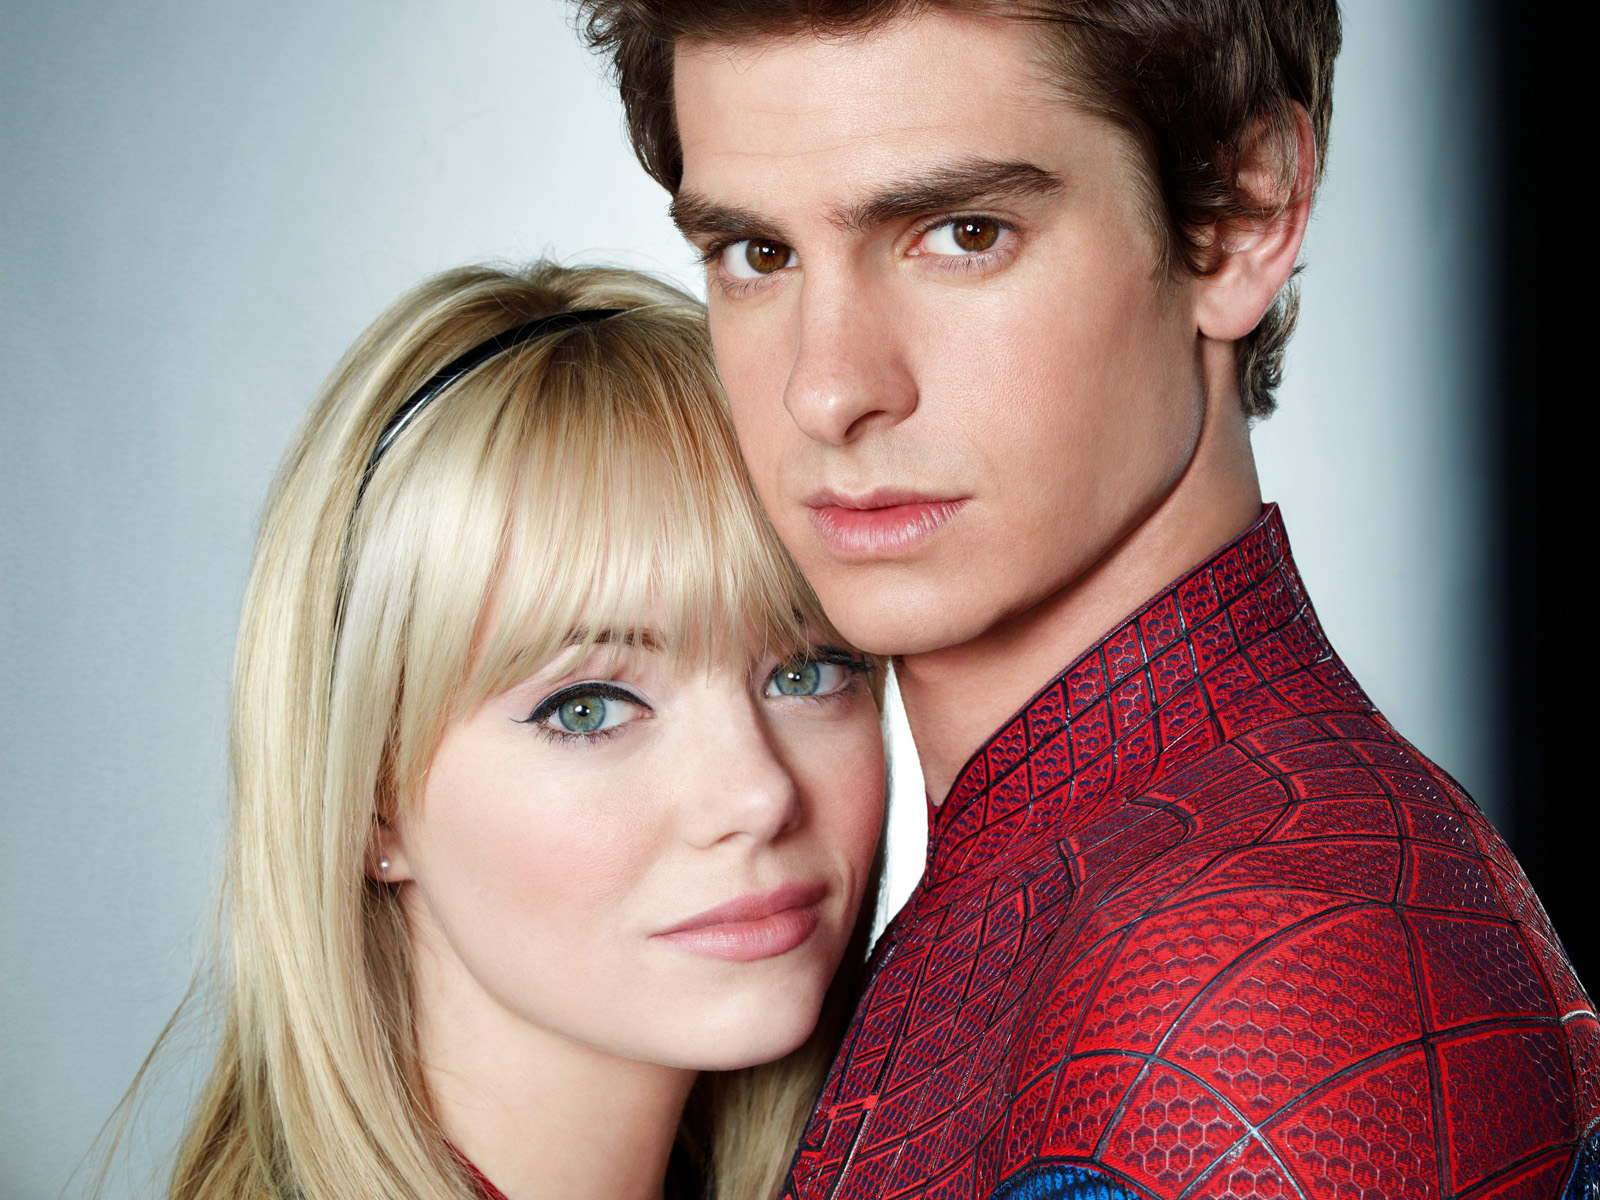 http://1.bp.blogspot.com/-_hdx8sSVRG8/Ttm-nYEURBI/AAAAAAAAAnU/XwN5DAiZb0k/s1600/Andrew_Garfield__Emma_Stone_-The_Amazing_Spider-Man_2012_press_stills_.jpg